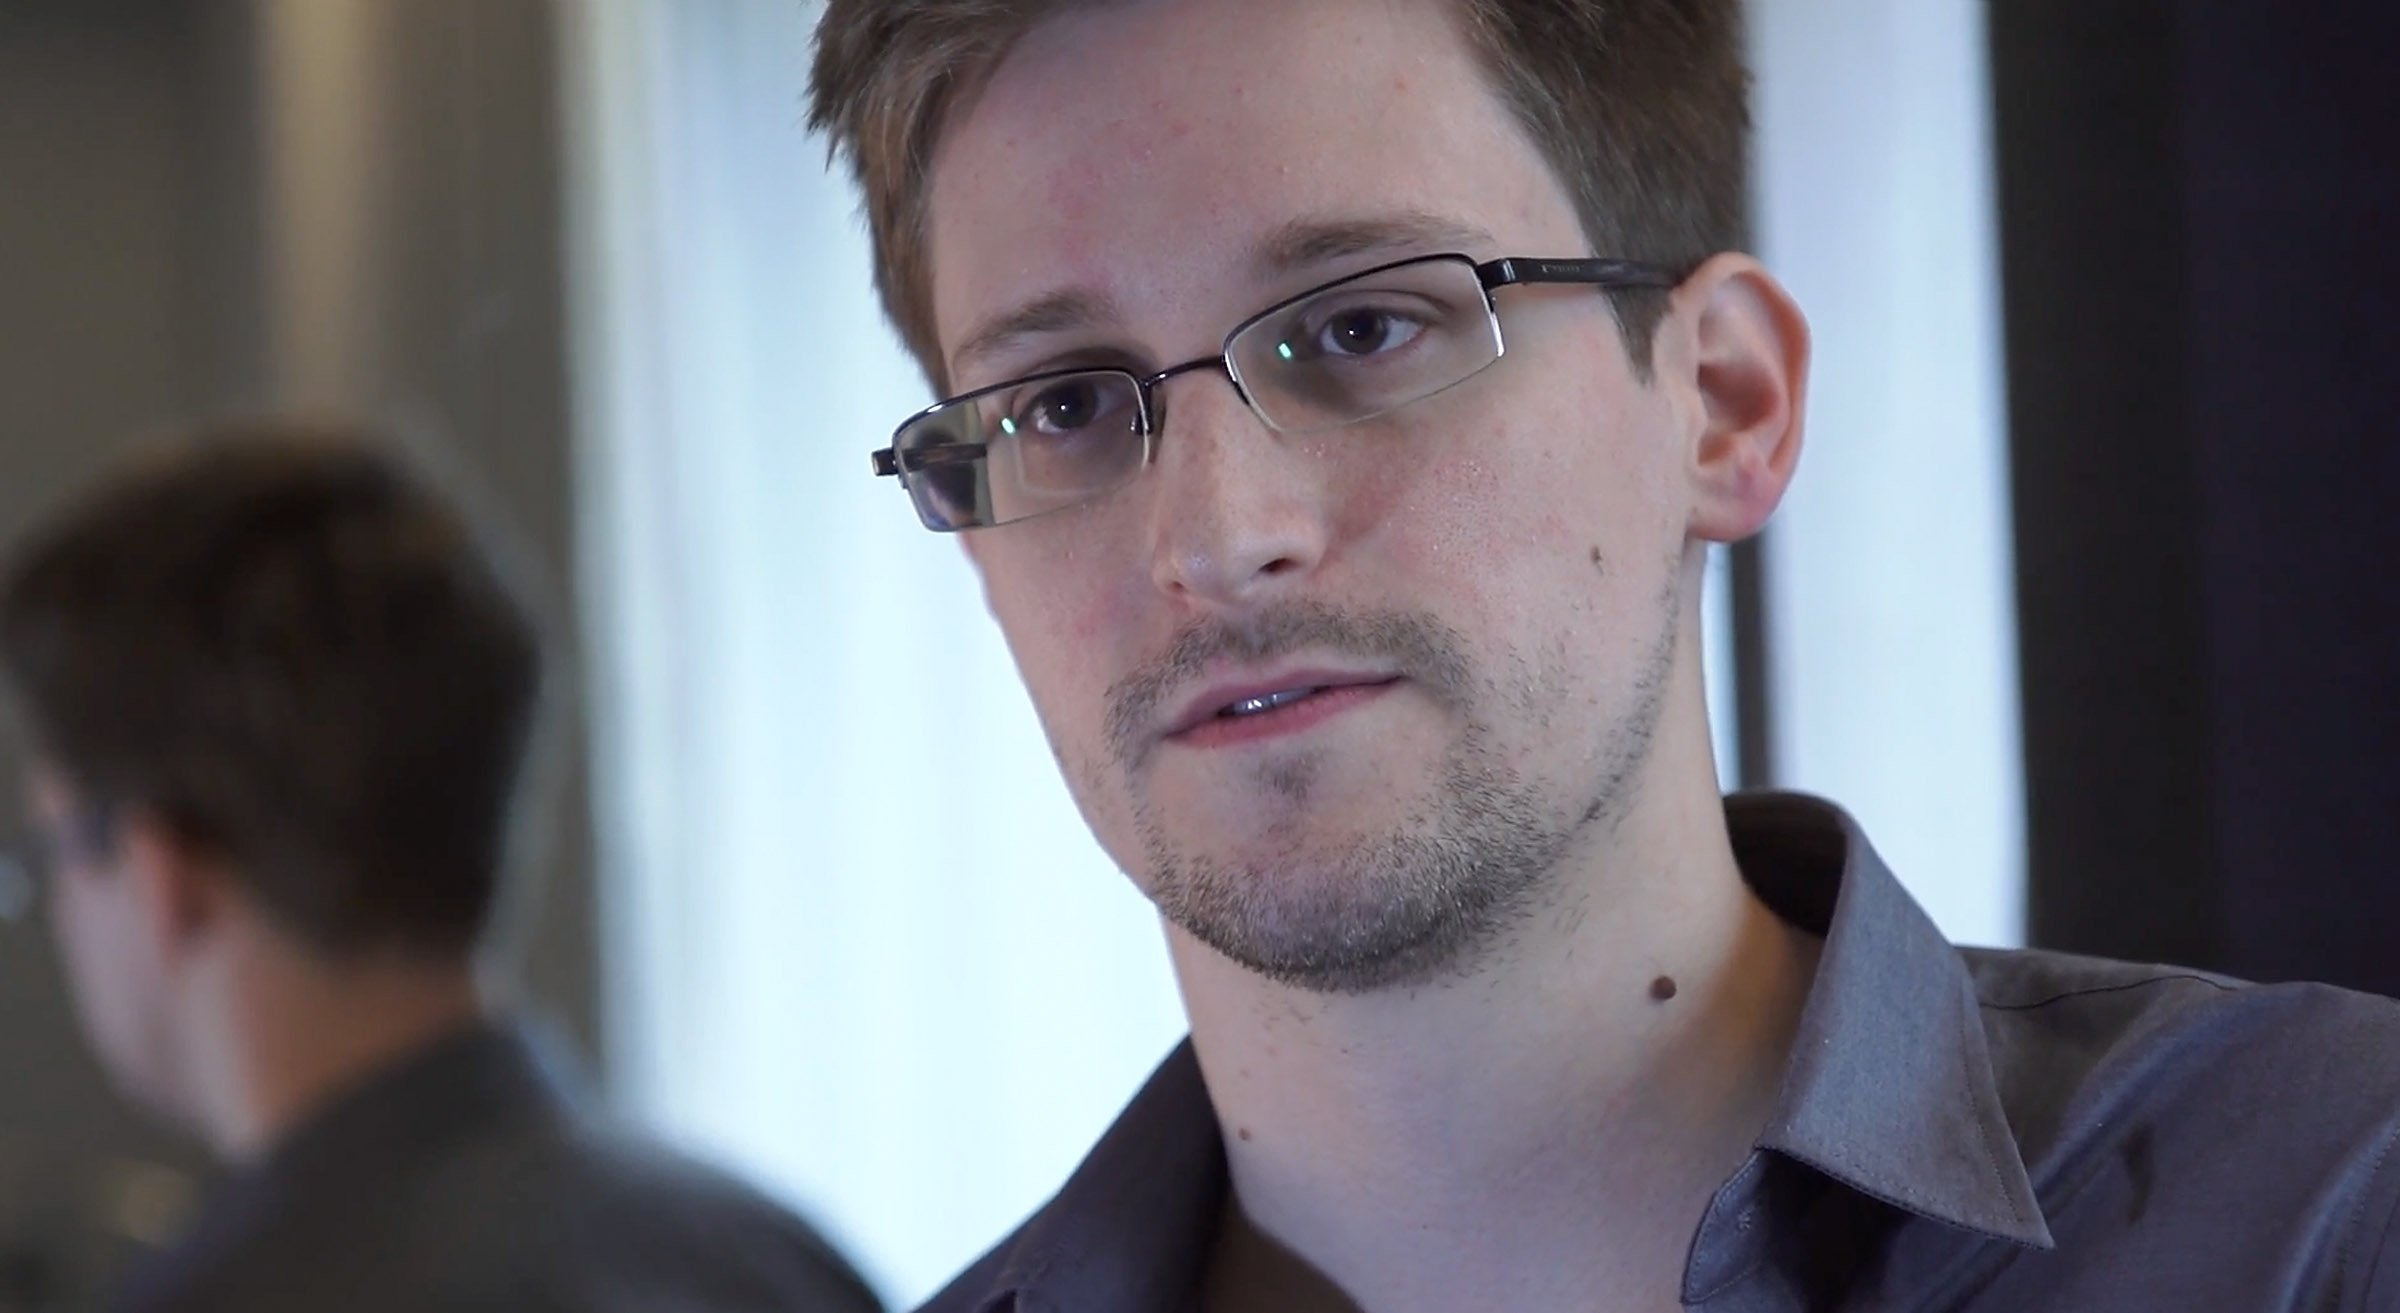 Edward Snowden searched the CIA's networks for proof that aliens exist. Here's what he found